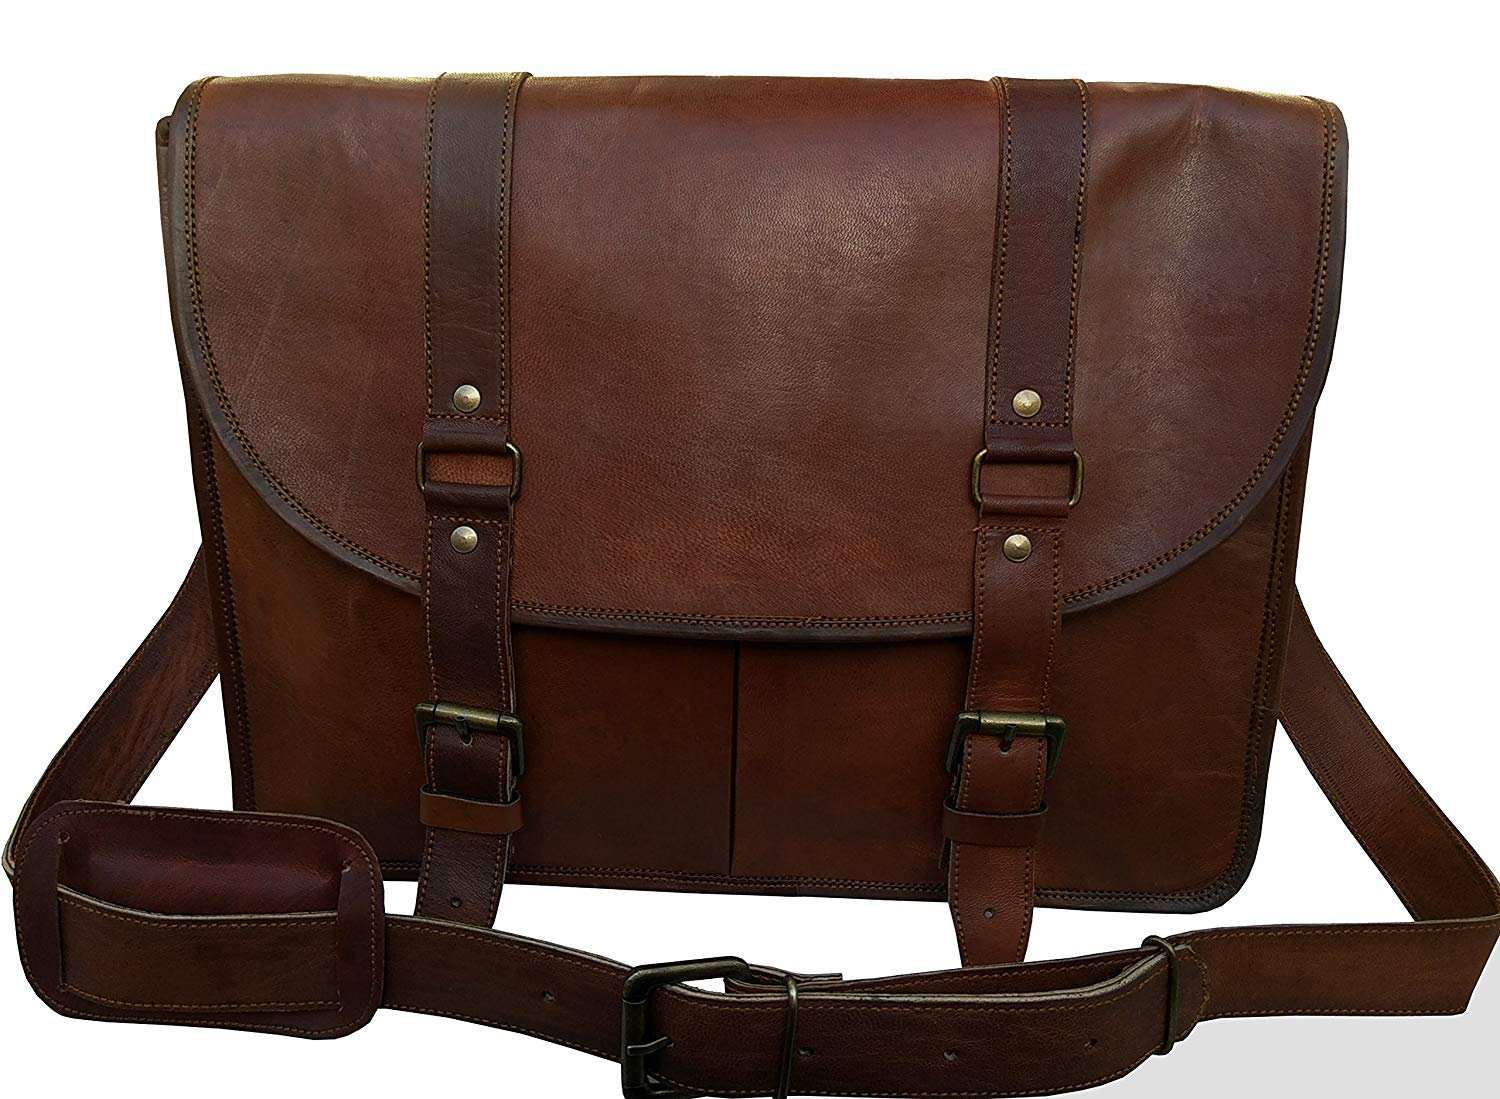 Rugged /& Distressed ~ Genuine Retro Satchel ~ Great for Office Vintage Business Briefcase for Laptops /& Books ~ Handmade 15 Inch VINTAGE COUTURE plastic School /& More Leather Messenger Bag for Men /& Women College